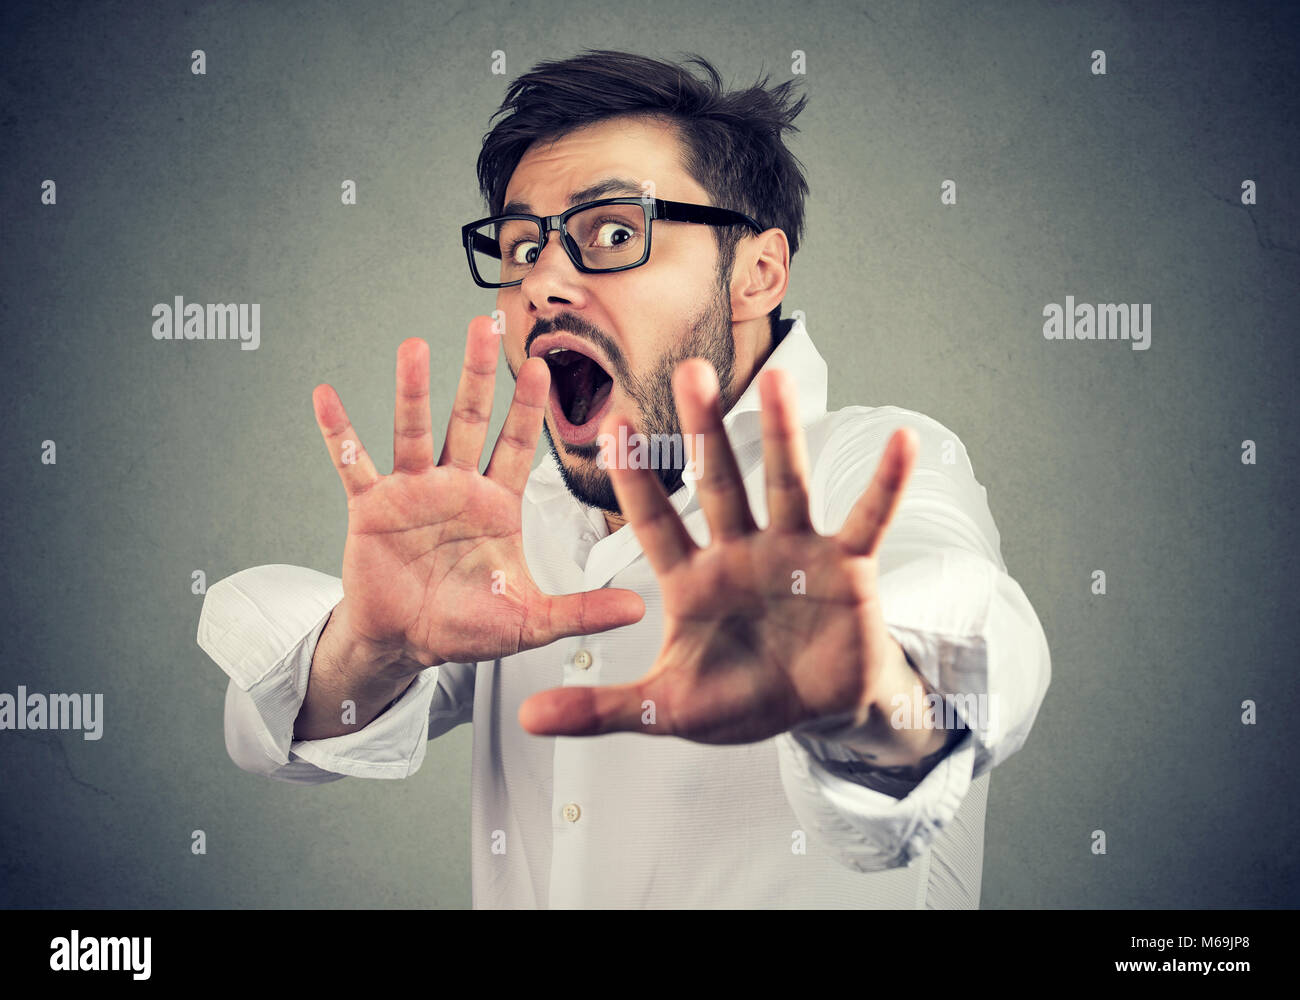 Young scared man in shirt holding hands in front of face and screaming in panic. - Stock Image